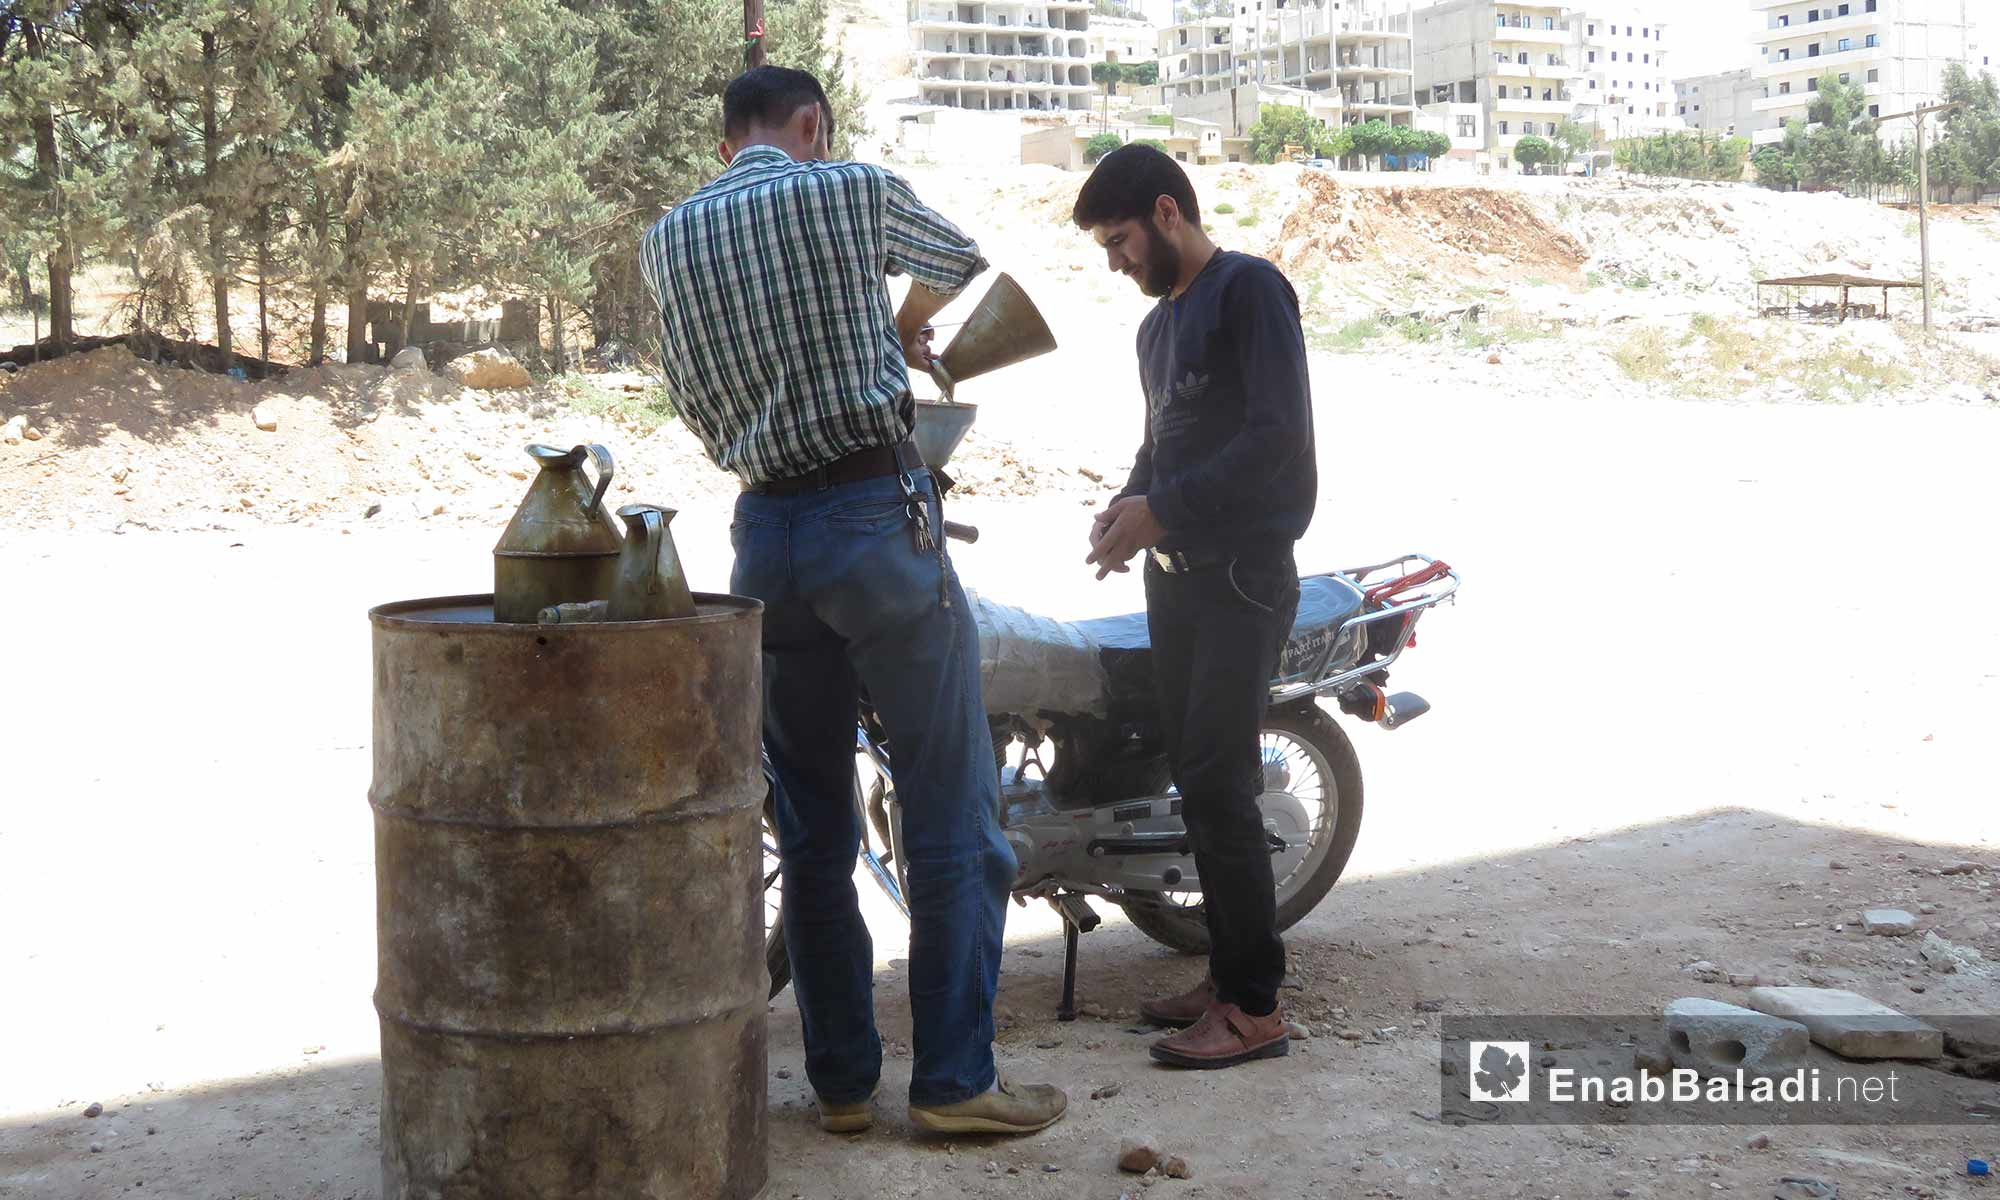 A fuel merchant in the city of Afrin, rural Aleppo – June 21, 2018 (Enab Baladi)